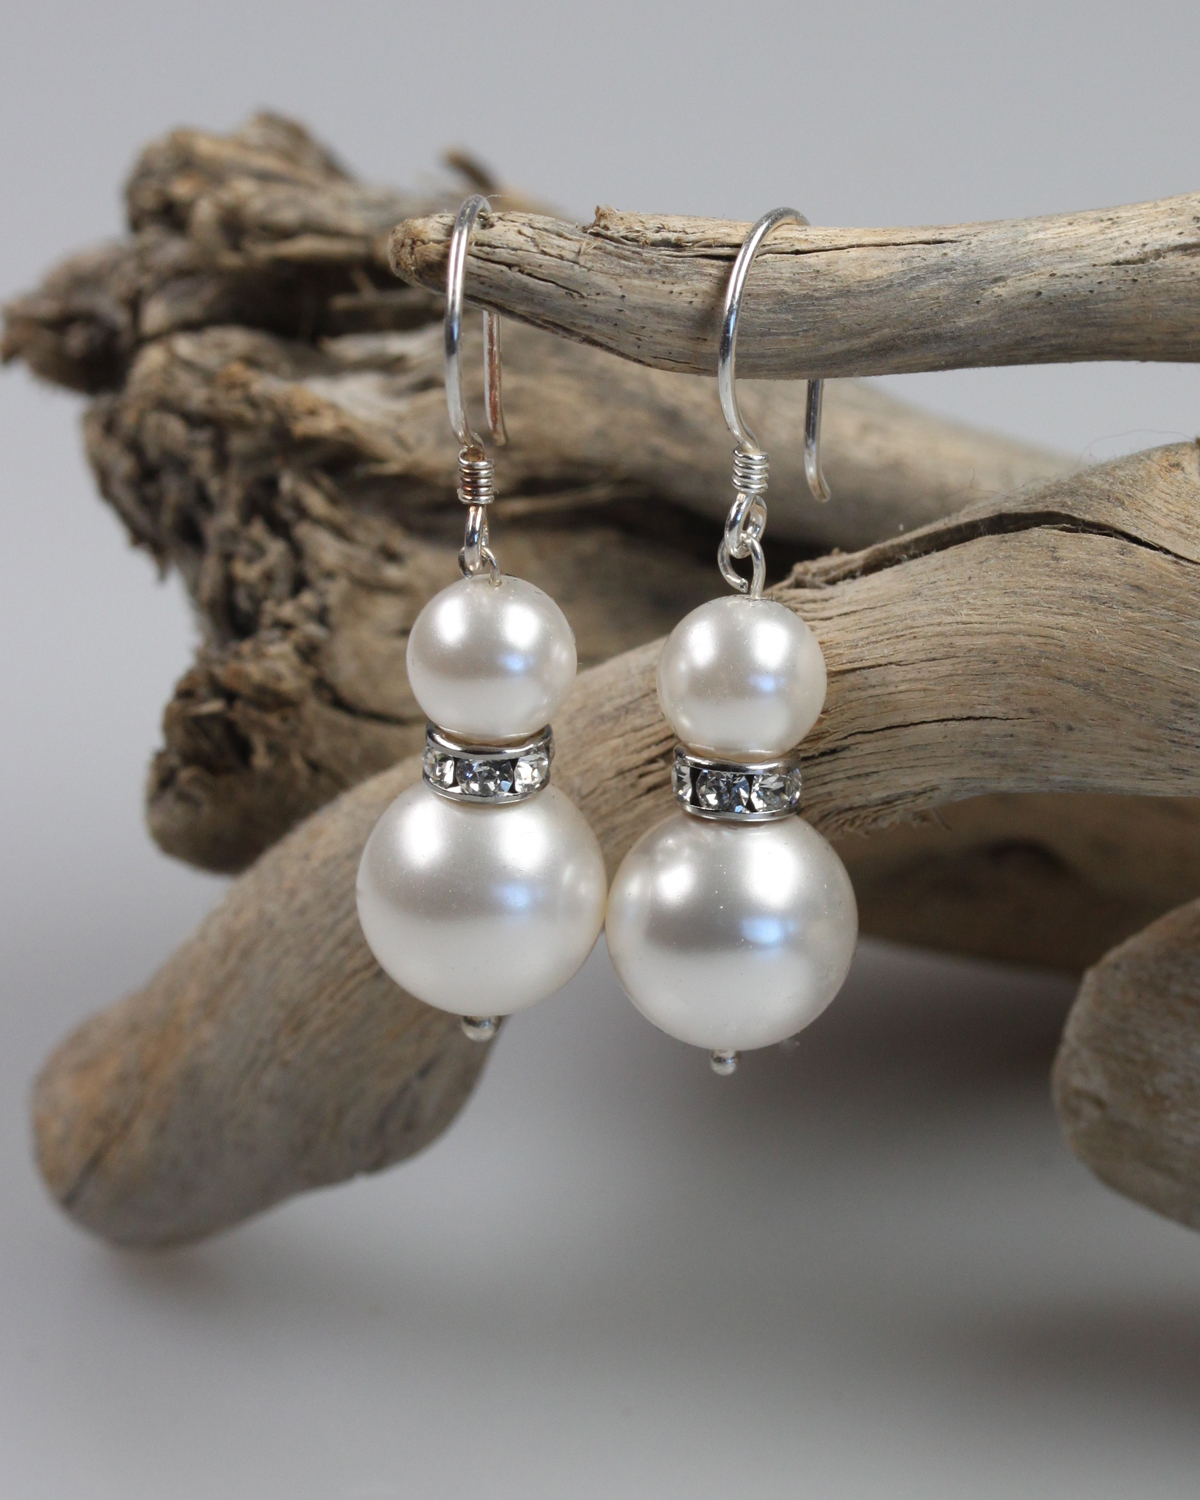 nemours swarovski pearls earrings